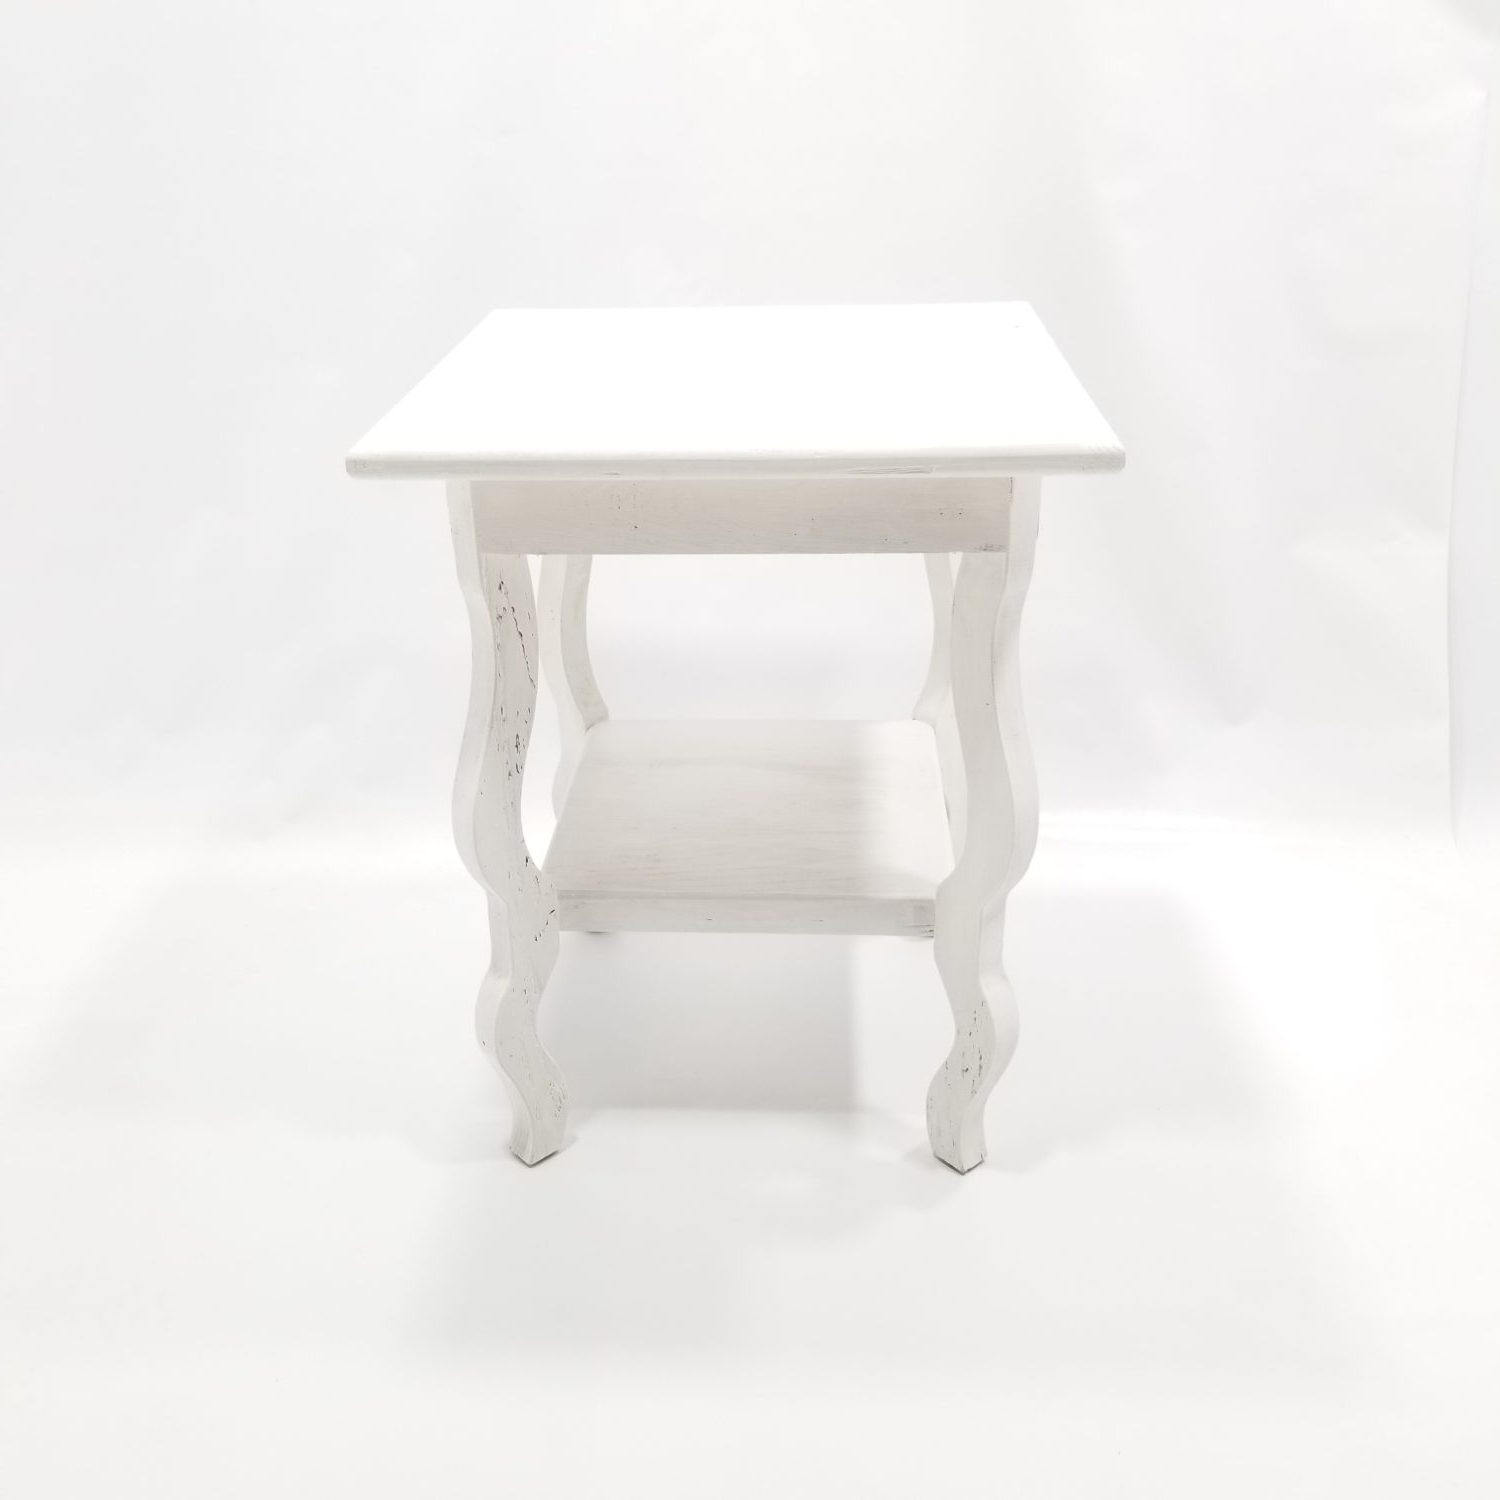 Limewash Coffee Tables Pertaining To Most Up To Date Lime Wash Side Table (View 12 of 20)